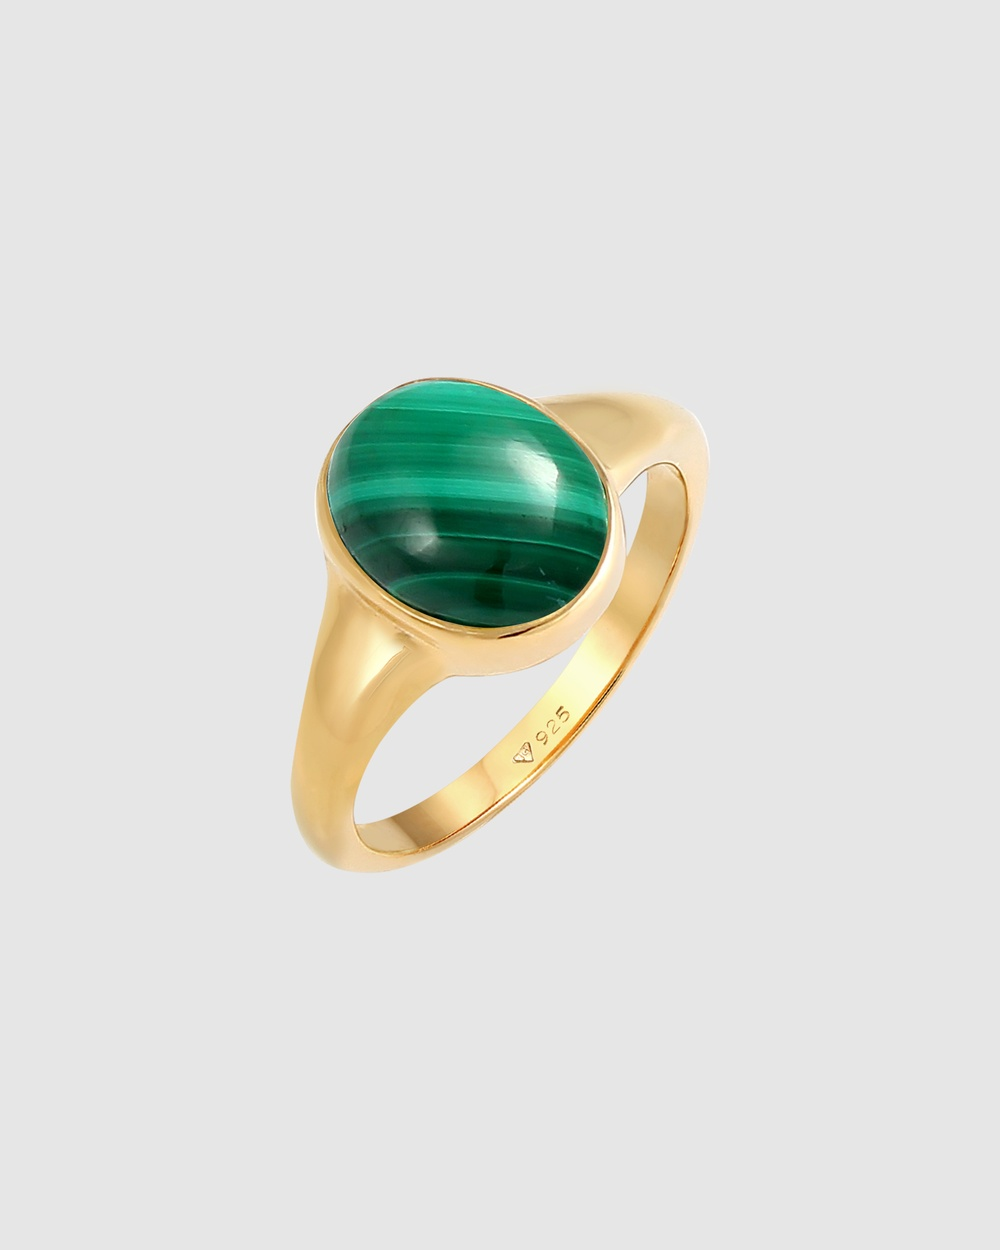 Elli Jewelry Ring Signet Malachite Green in 925 Sterling Silver Gold Plated Jewellery Gold